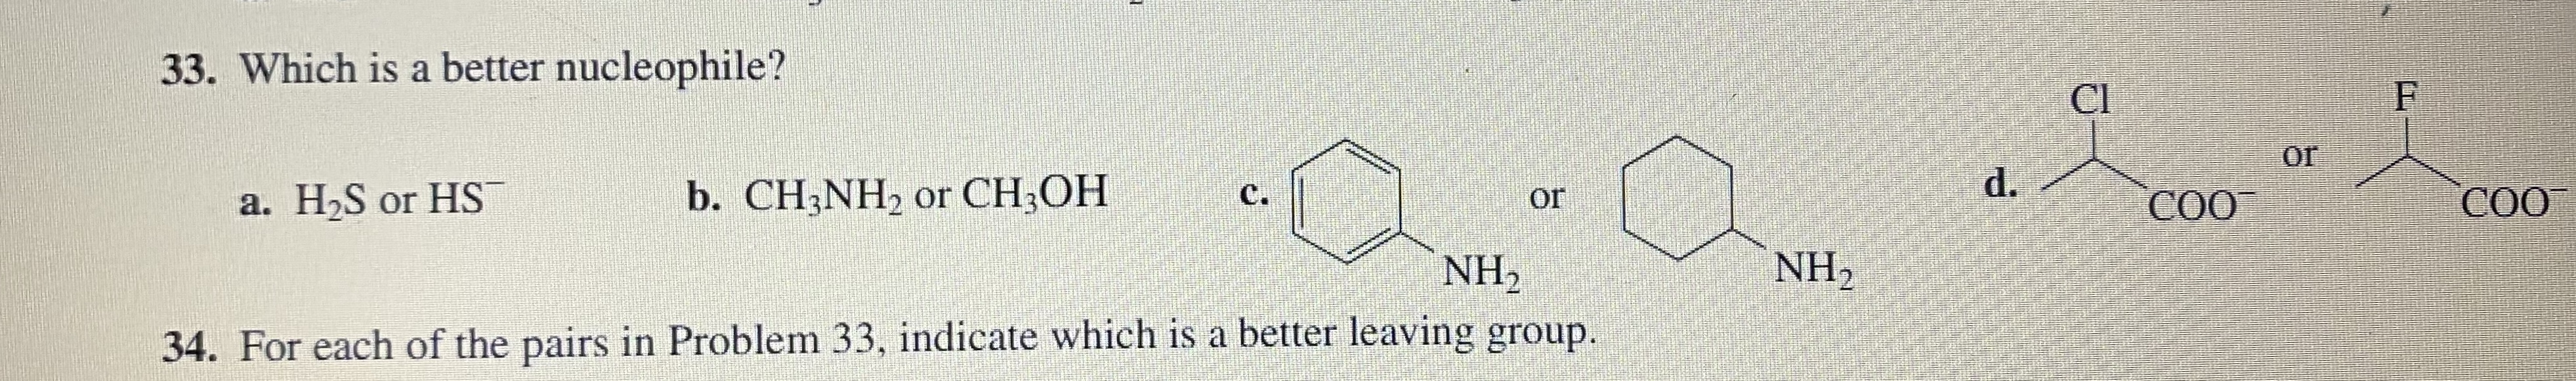 33. Which is a better nucleophile? Cl F or d. b. CH3NH2 or CH;OH СО a. H,S or HS C. CO or NH2 NH2 34. For each of the pairs in Problem 33, indicate which is a better leaving group.